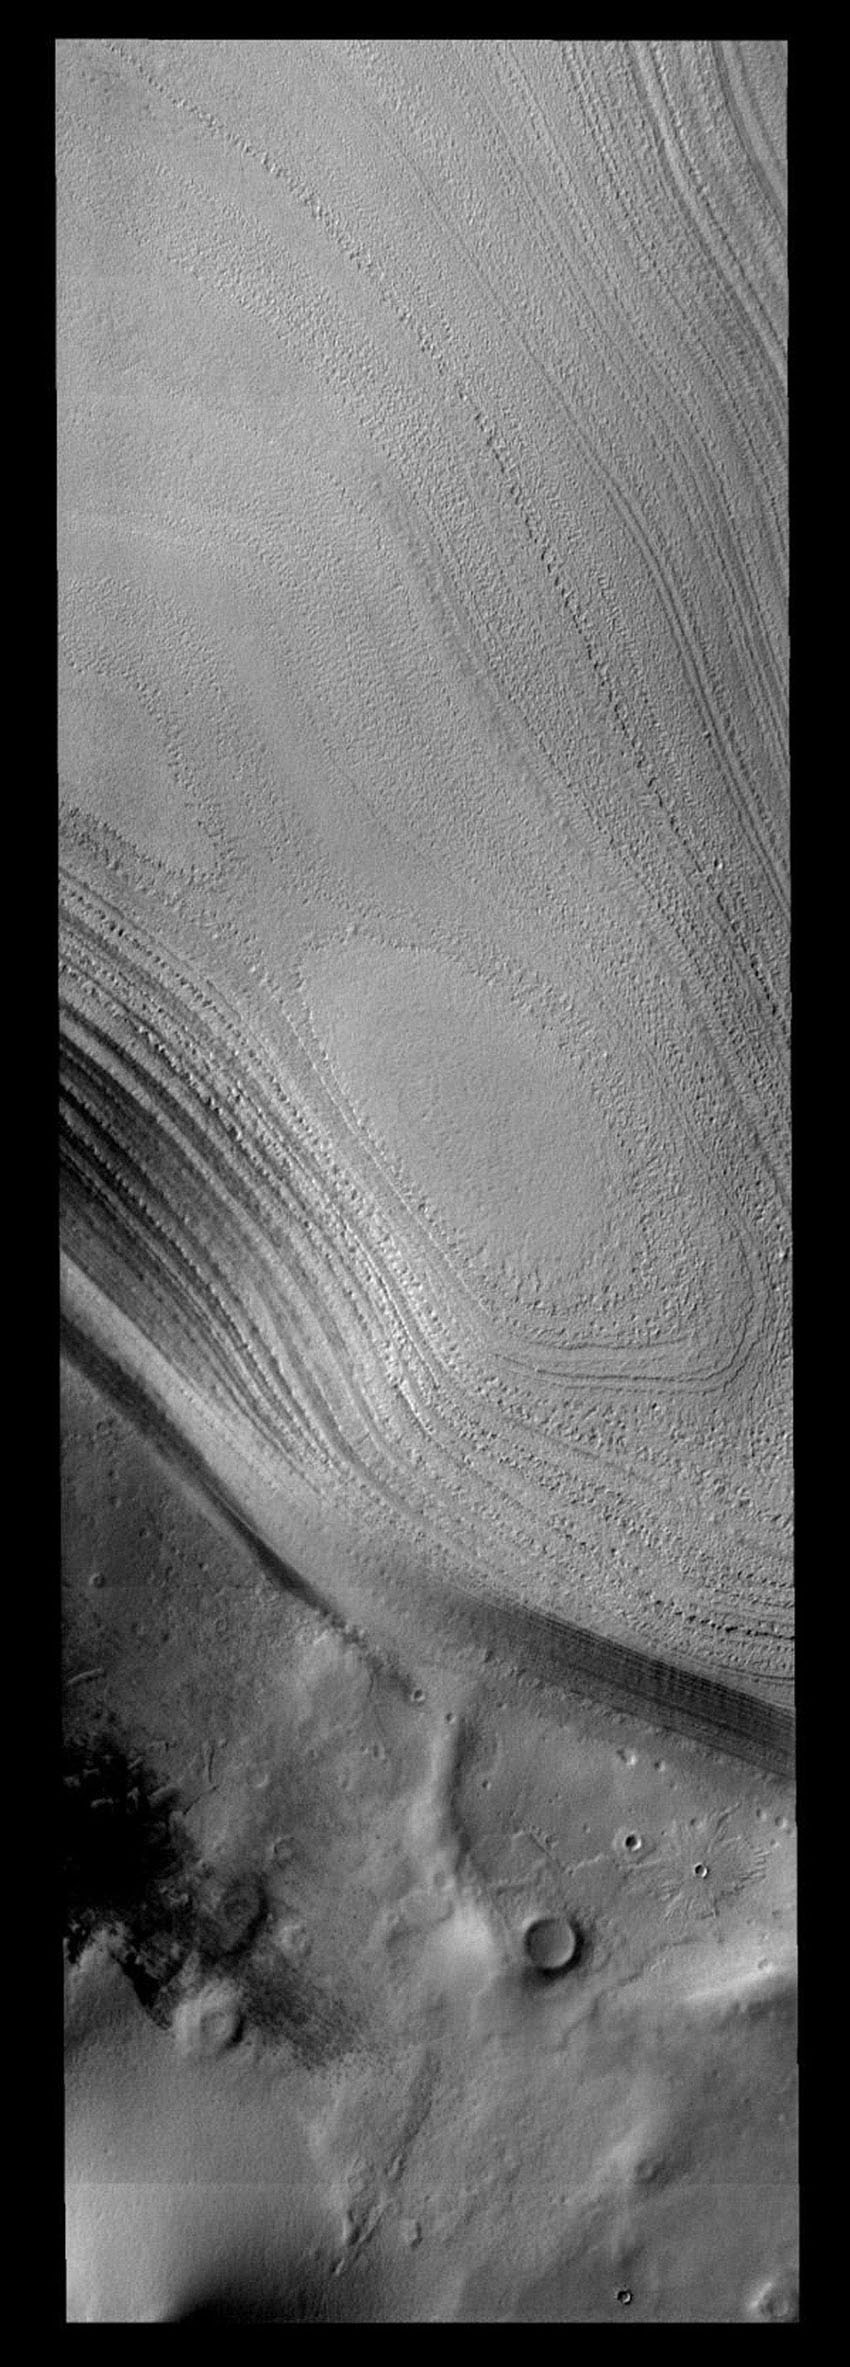 Taken during southern summer, this image from NASA's 2001 Mars Odyssey spacecraft shows both the ice layers of the southern polar cap of Mars and the dusty surface that surrounds the cap.